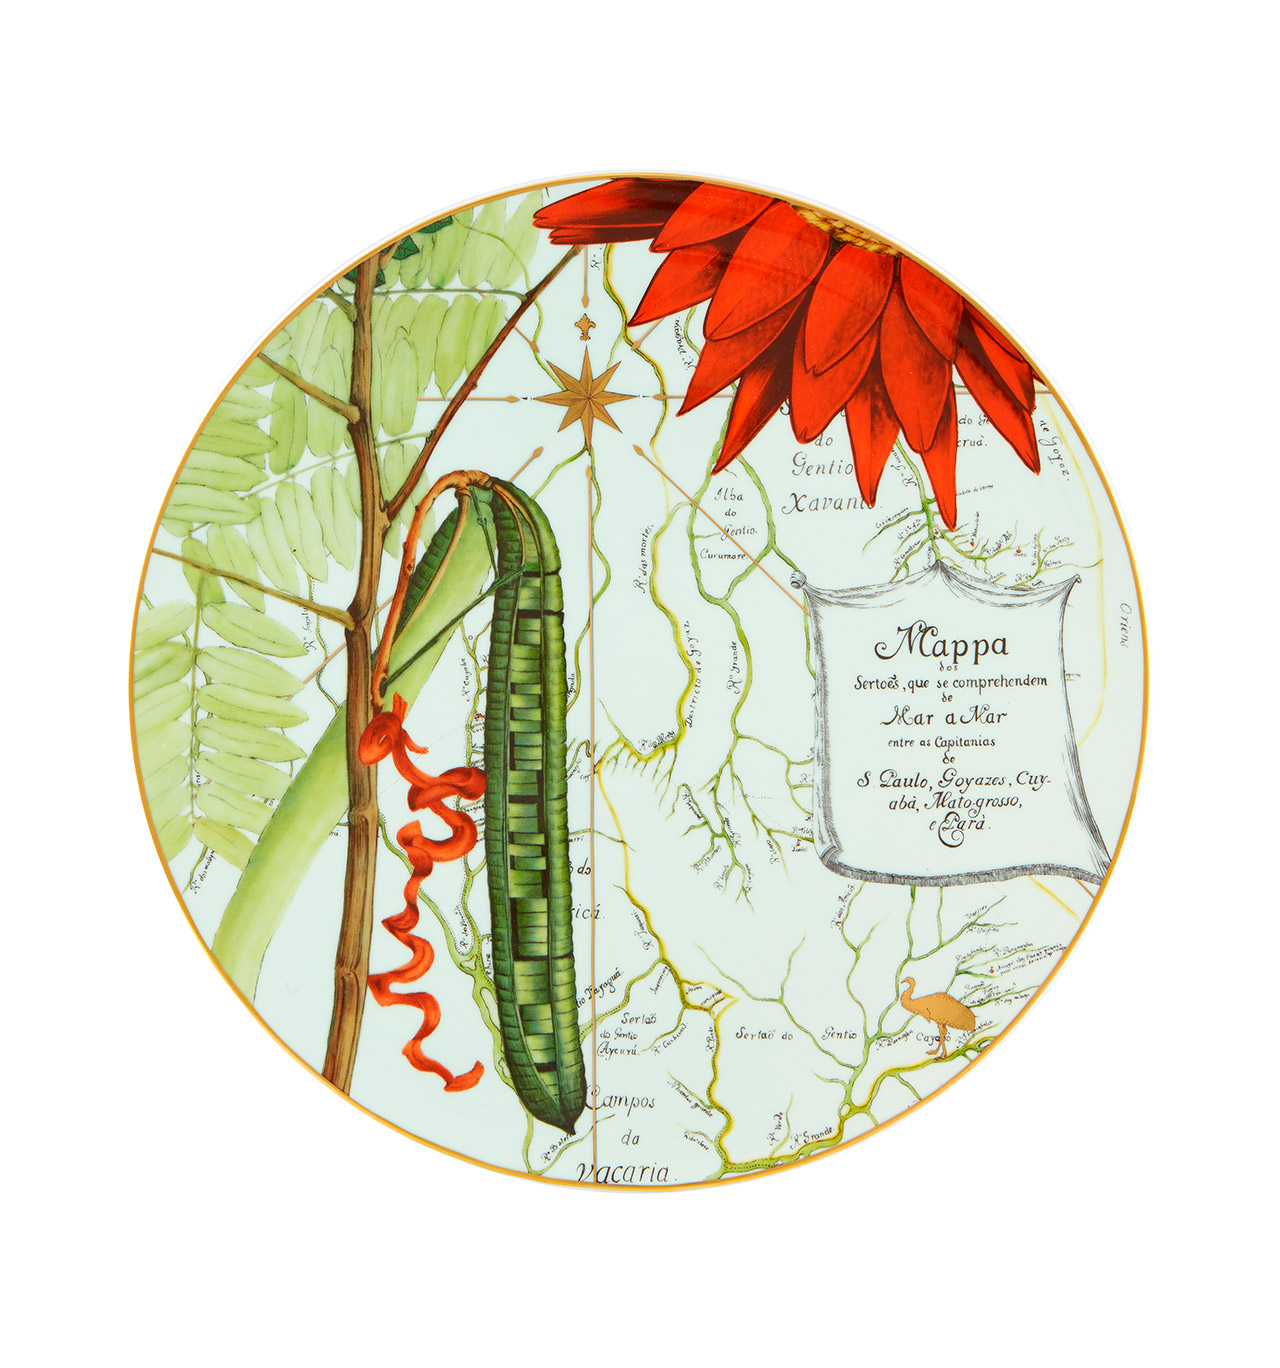 "Plate Marker Amazon. Inspired by the work ""Philosophical Journeys"" of the naturalist Alexandre Rodrigues Ferreira, and by the fauna, flora and people of the Amazon today, this collection, developed in partnership with Ecoarts Amazonia, brings together, for the first time, all the brands of the group Alegre , Casa Alegre and Bordallo Pinheiro."